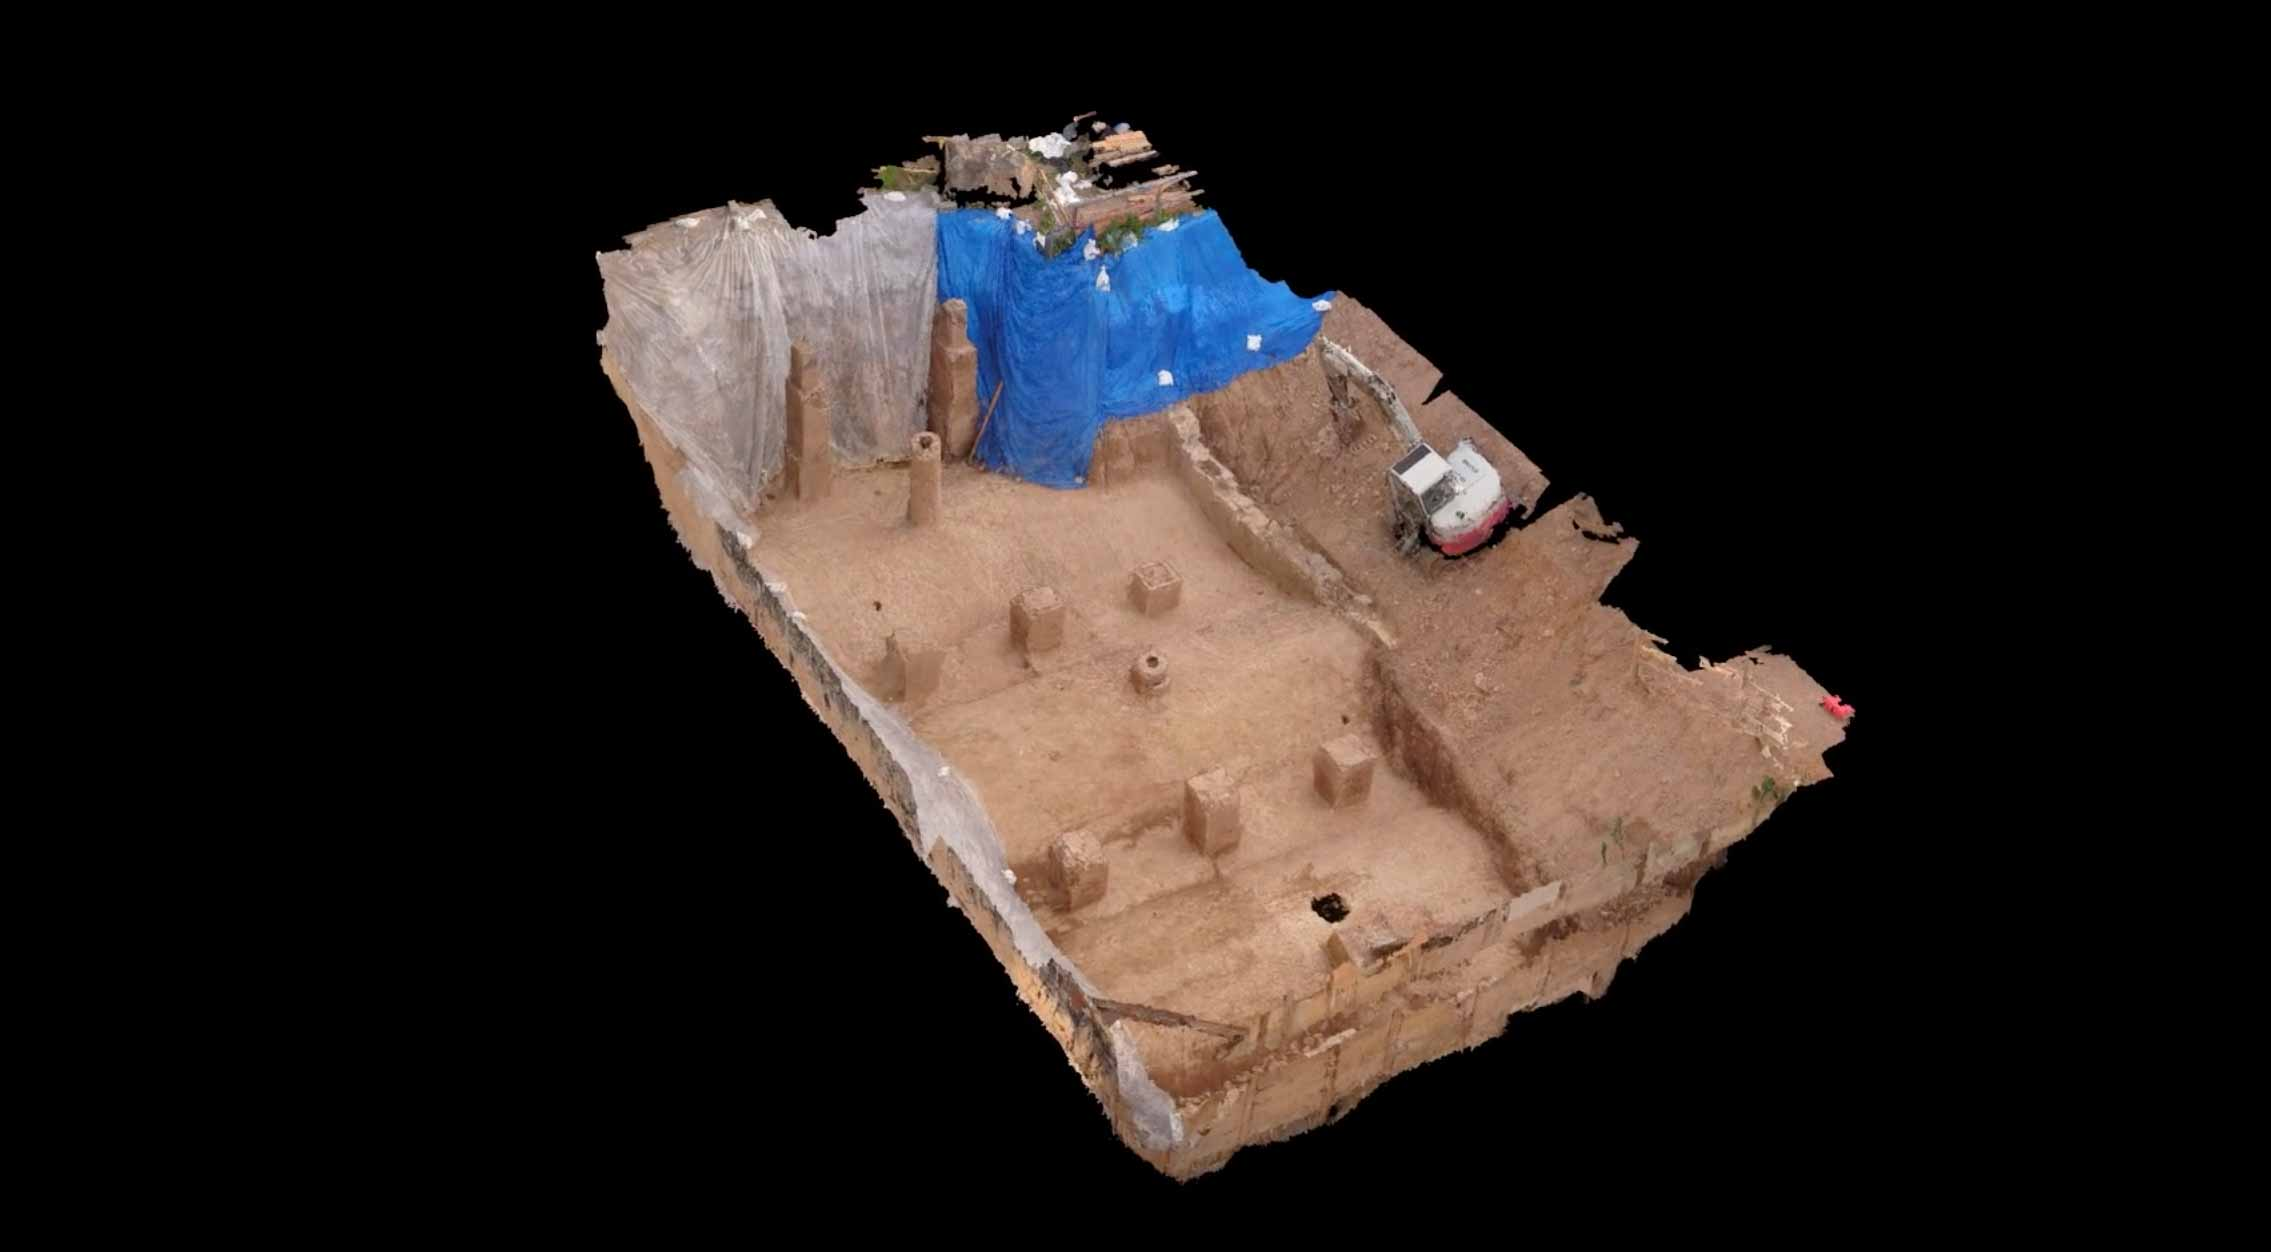 Archaeologist uses Drones to Create a 3D Model of 1860s Brewery Vaults in Brooklyn, NY